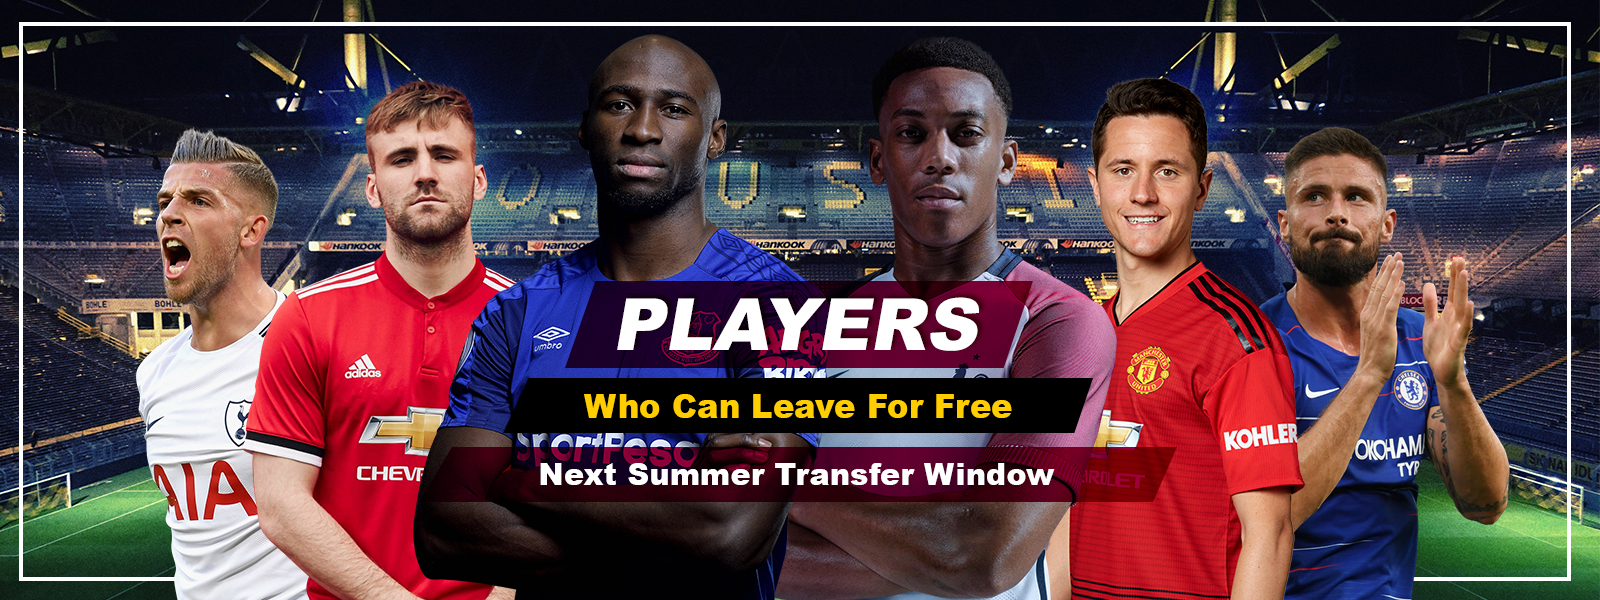 7 Soccer Players Who Can Leave For Free Next Transfer Window